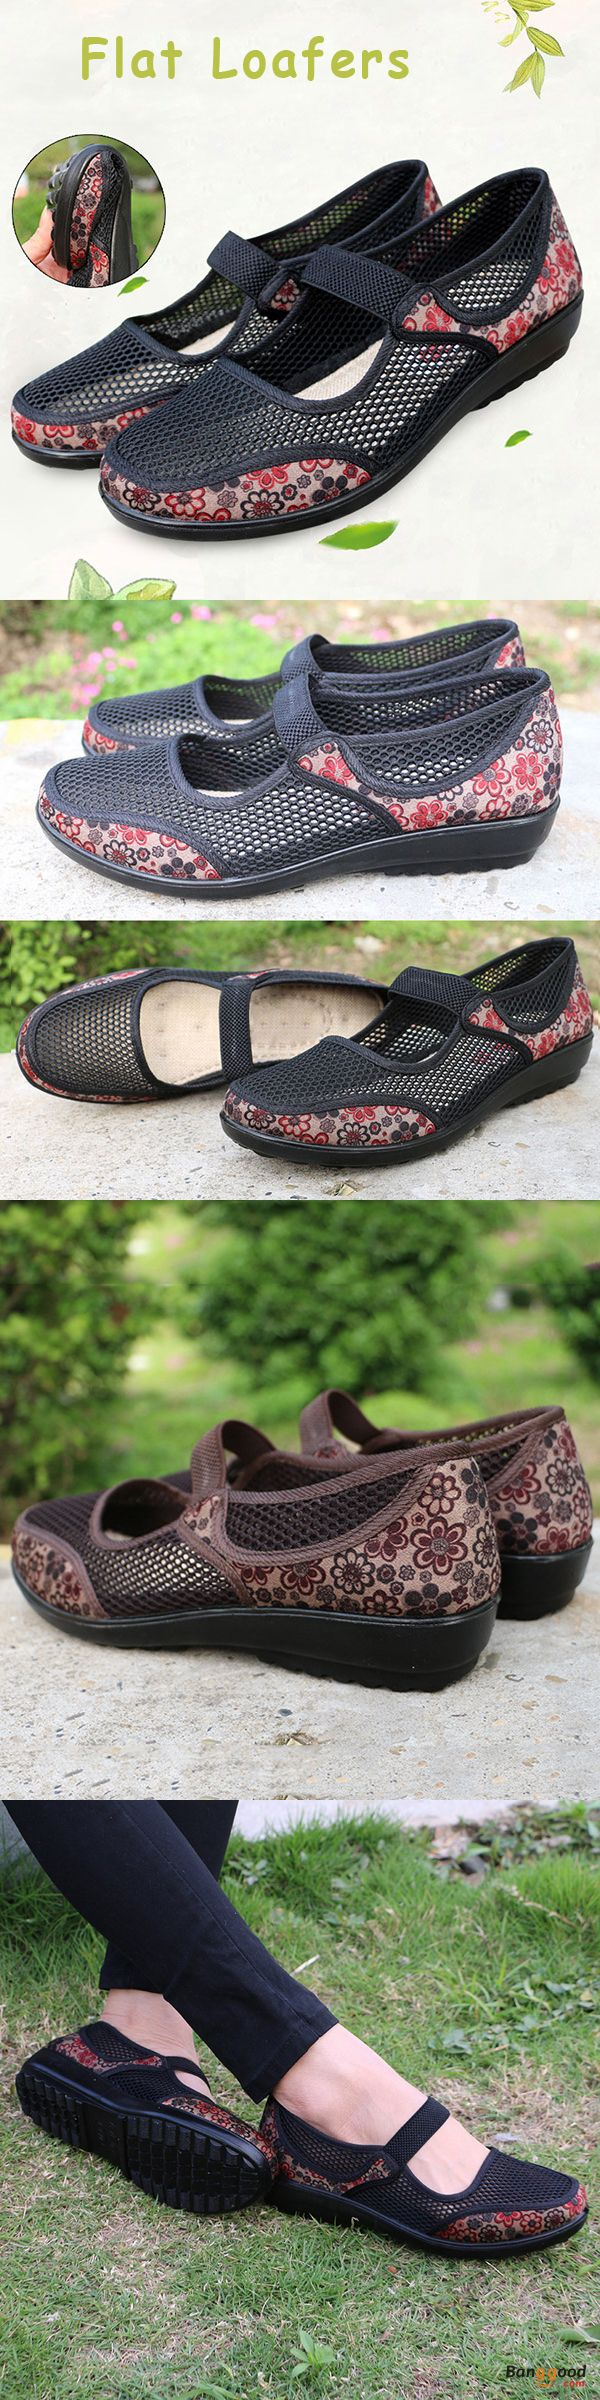 US$22.66+Free shipping. Size(US): 5~11. Summer Sandals, Women Flat Sandals, shoes flats, shoes sandals, Loafer Shoes, Casual, Outdoor, Comfortable. Color: Black, Coffee. Upper Material: Mesh & Cloth. Heel Height: 2cm. Platform Height: 2cm.